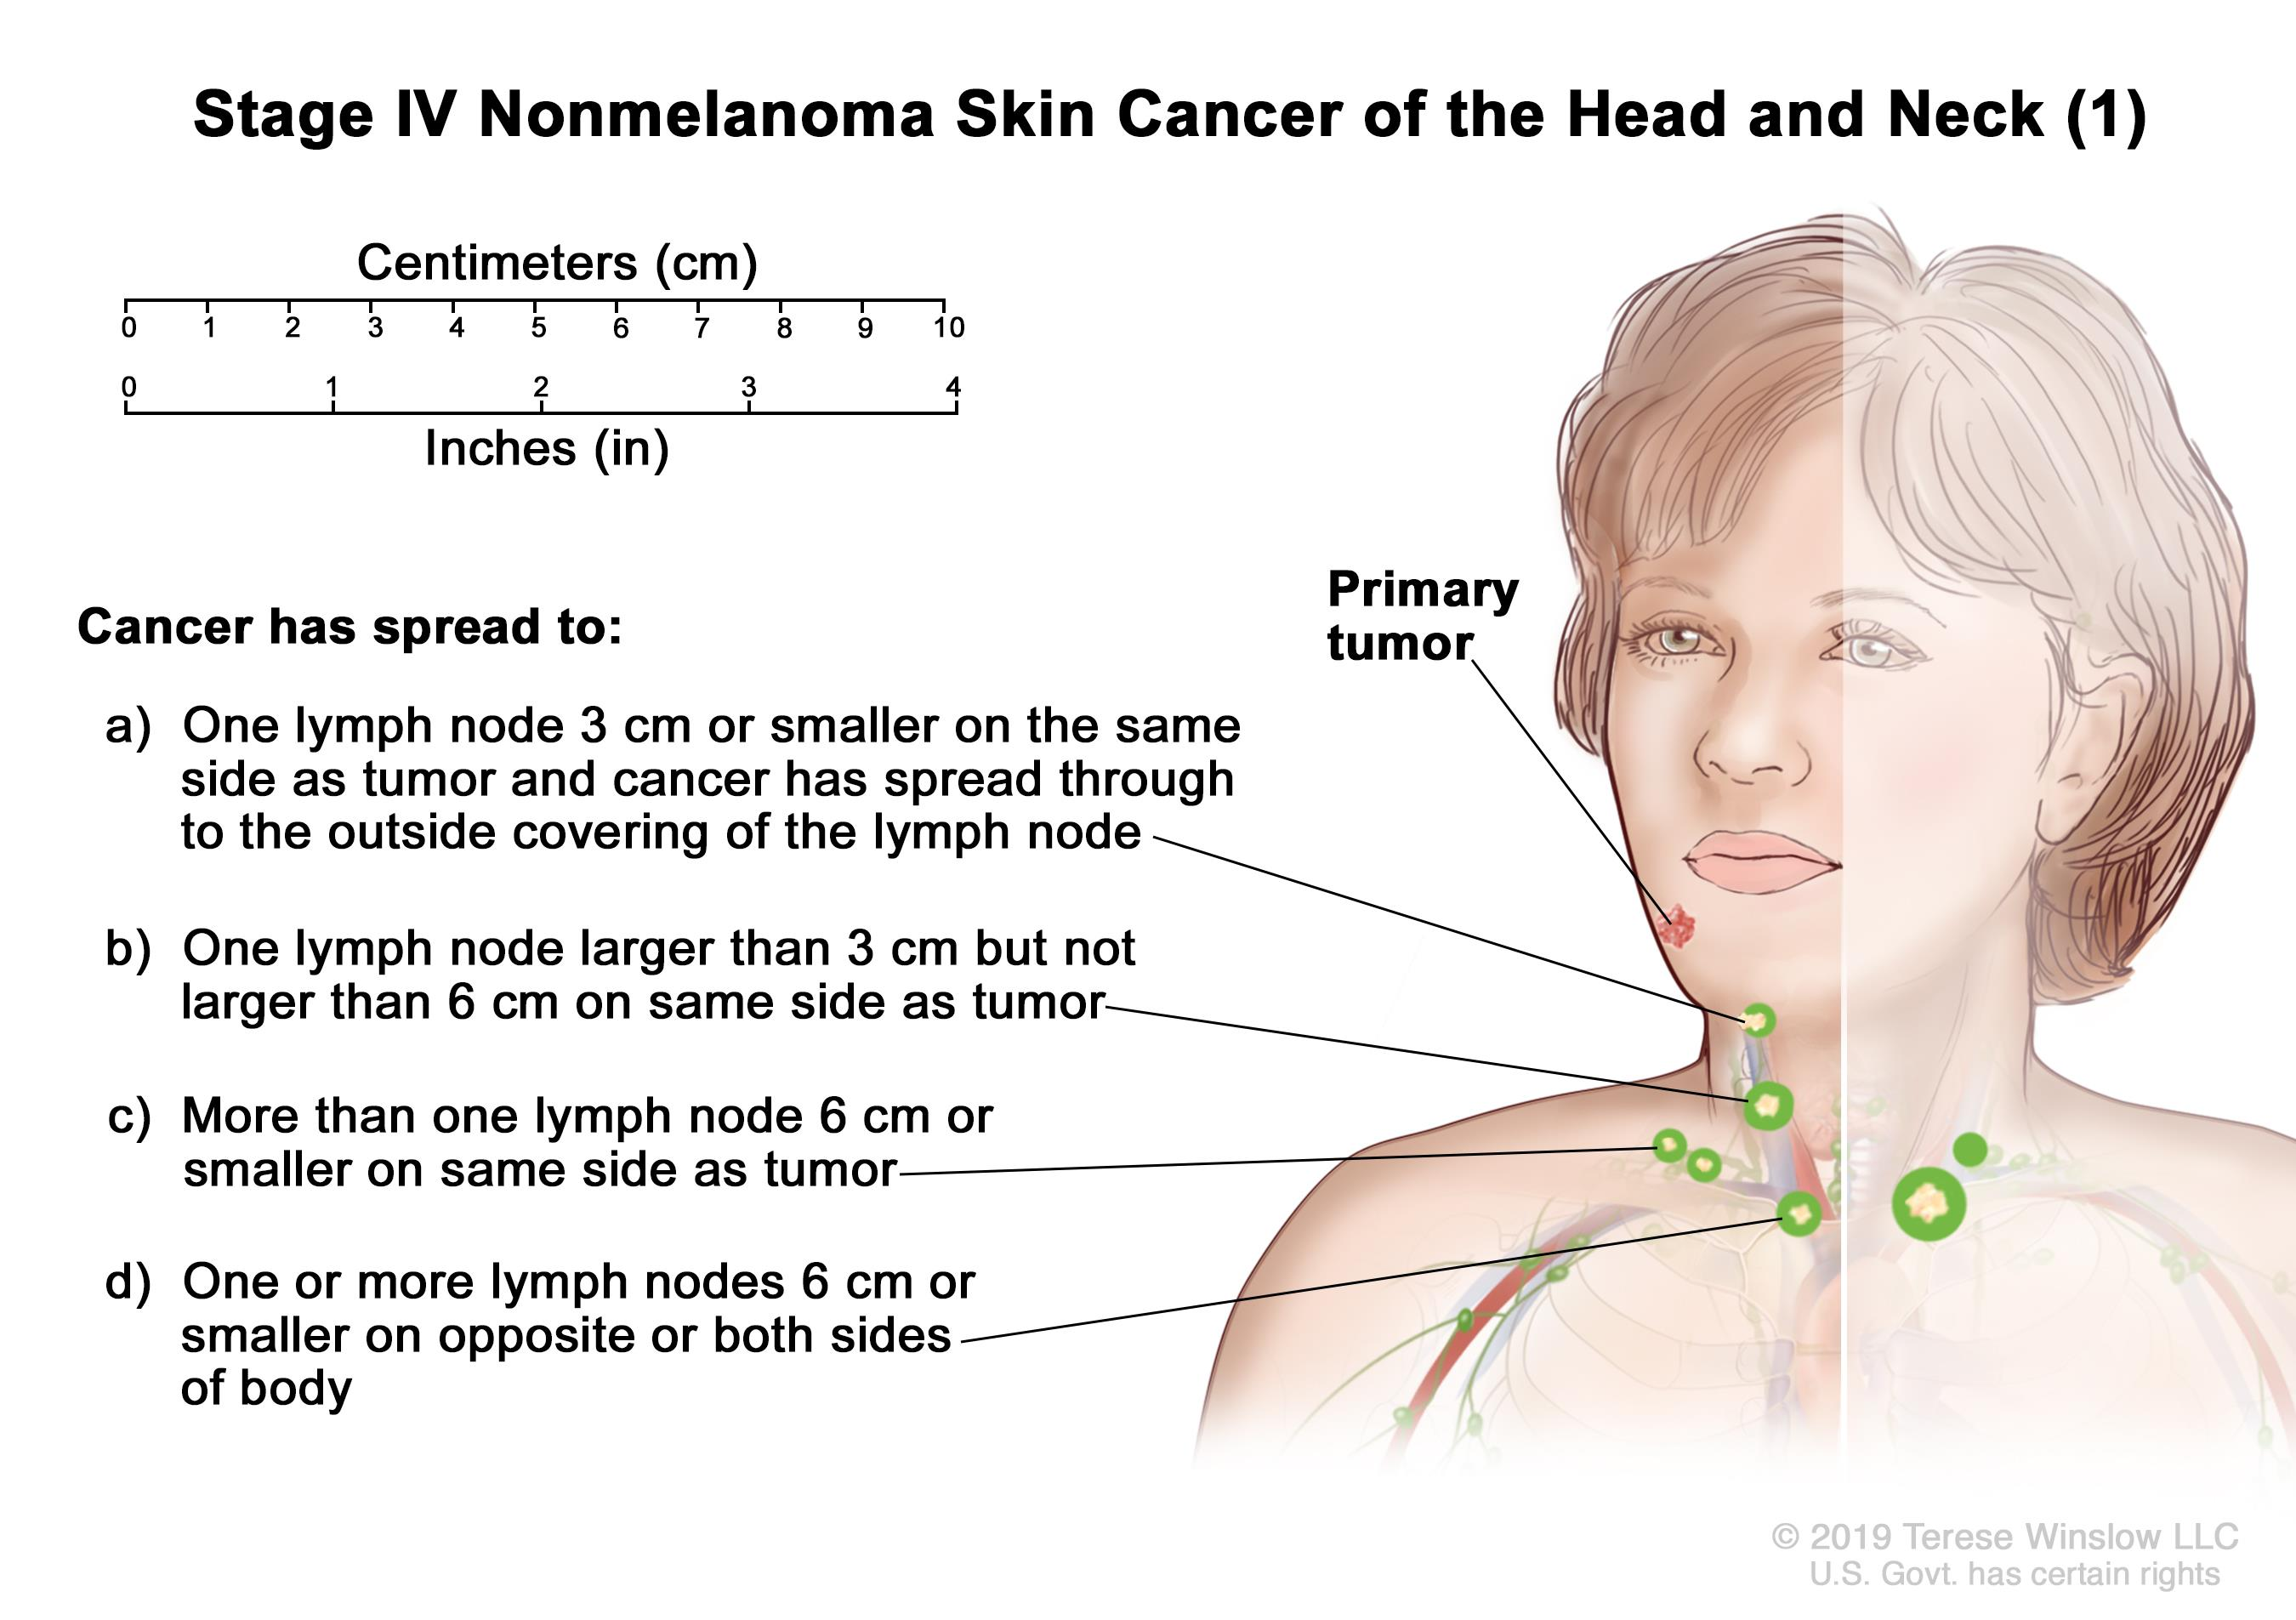 Stage IV nonmelanoma skin cancer (1); drawing shows a primary tumor in one arm with cancer in a lymph node on the same side of the body as the primary tumor.  Insets show 3 centimeters is about the size of a grape and 6 centimeters is about the size of an egg.